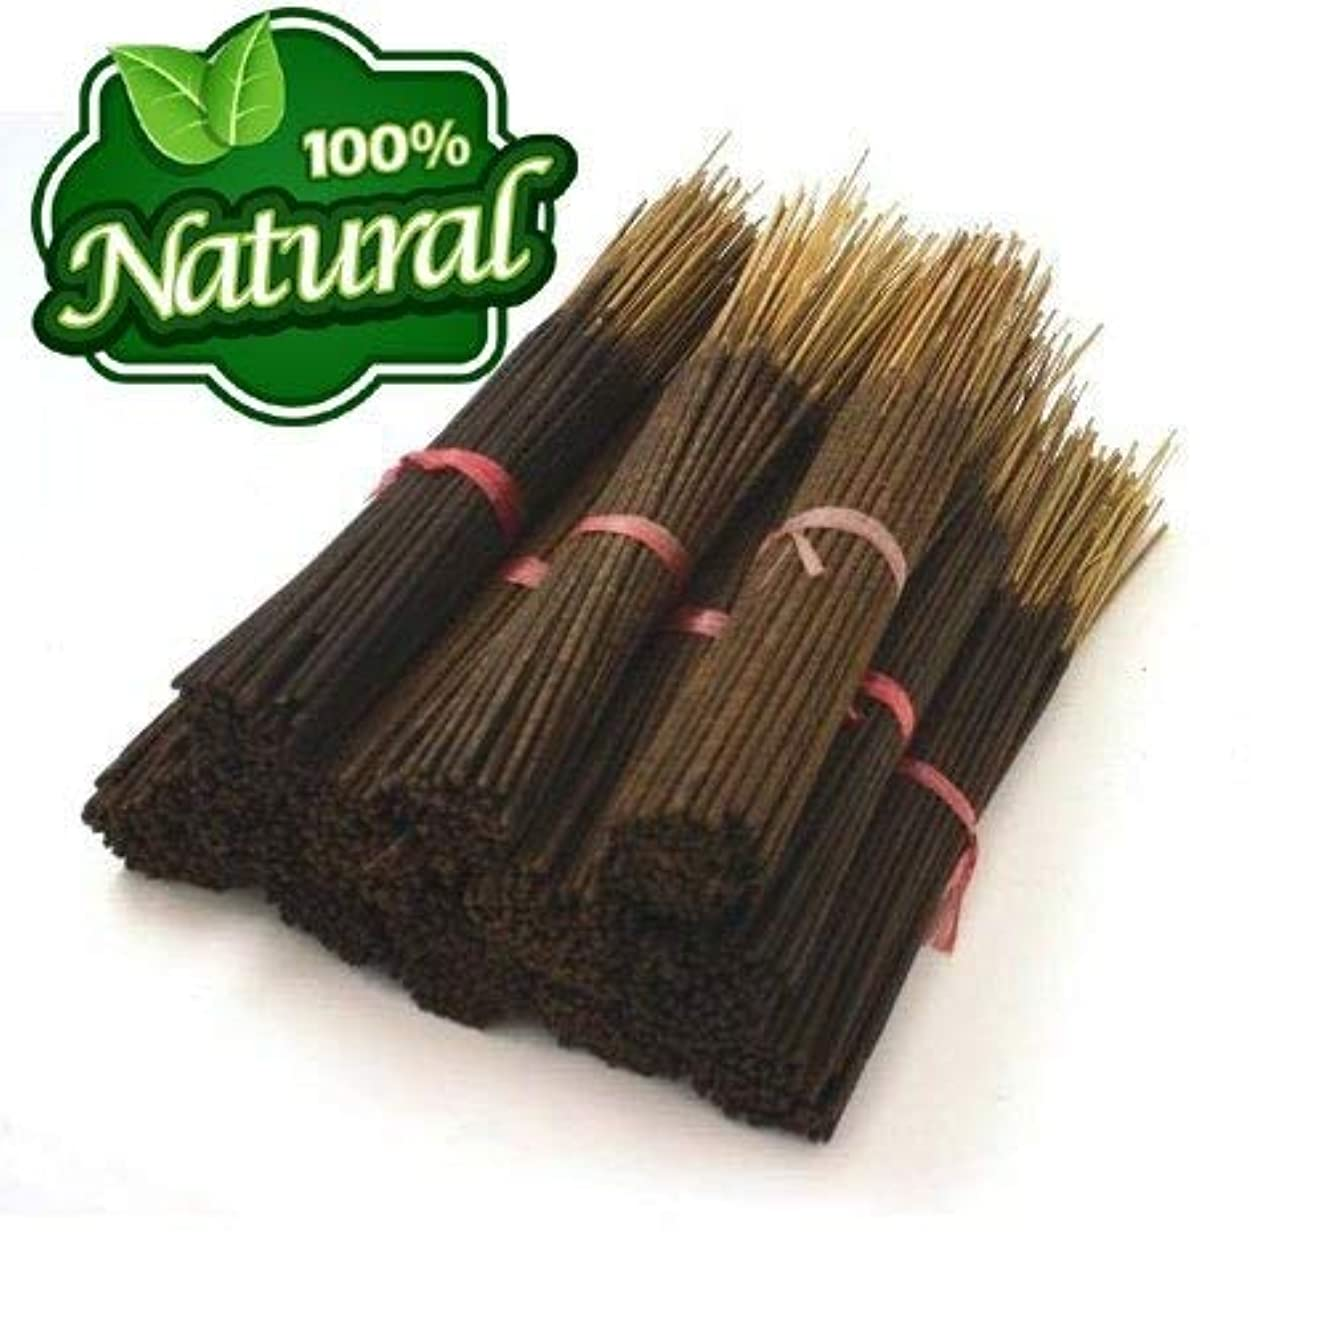 管理者人形サイズBless-Frankincense-and-Myrrh 100%-natural-incense-sticks Handmade-hand-dipped The-best-woods-scent-500-Pack-(100x5)